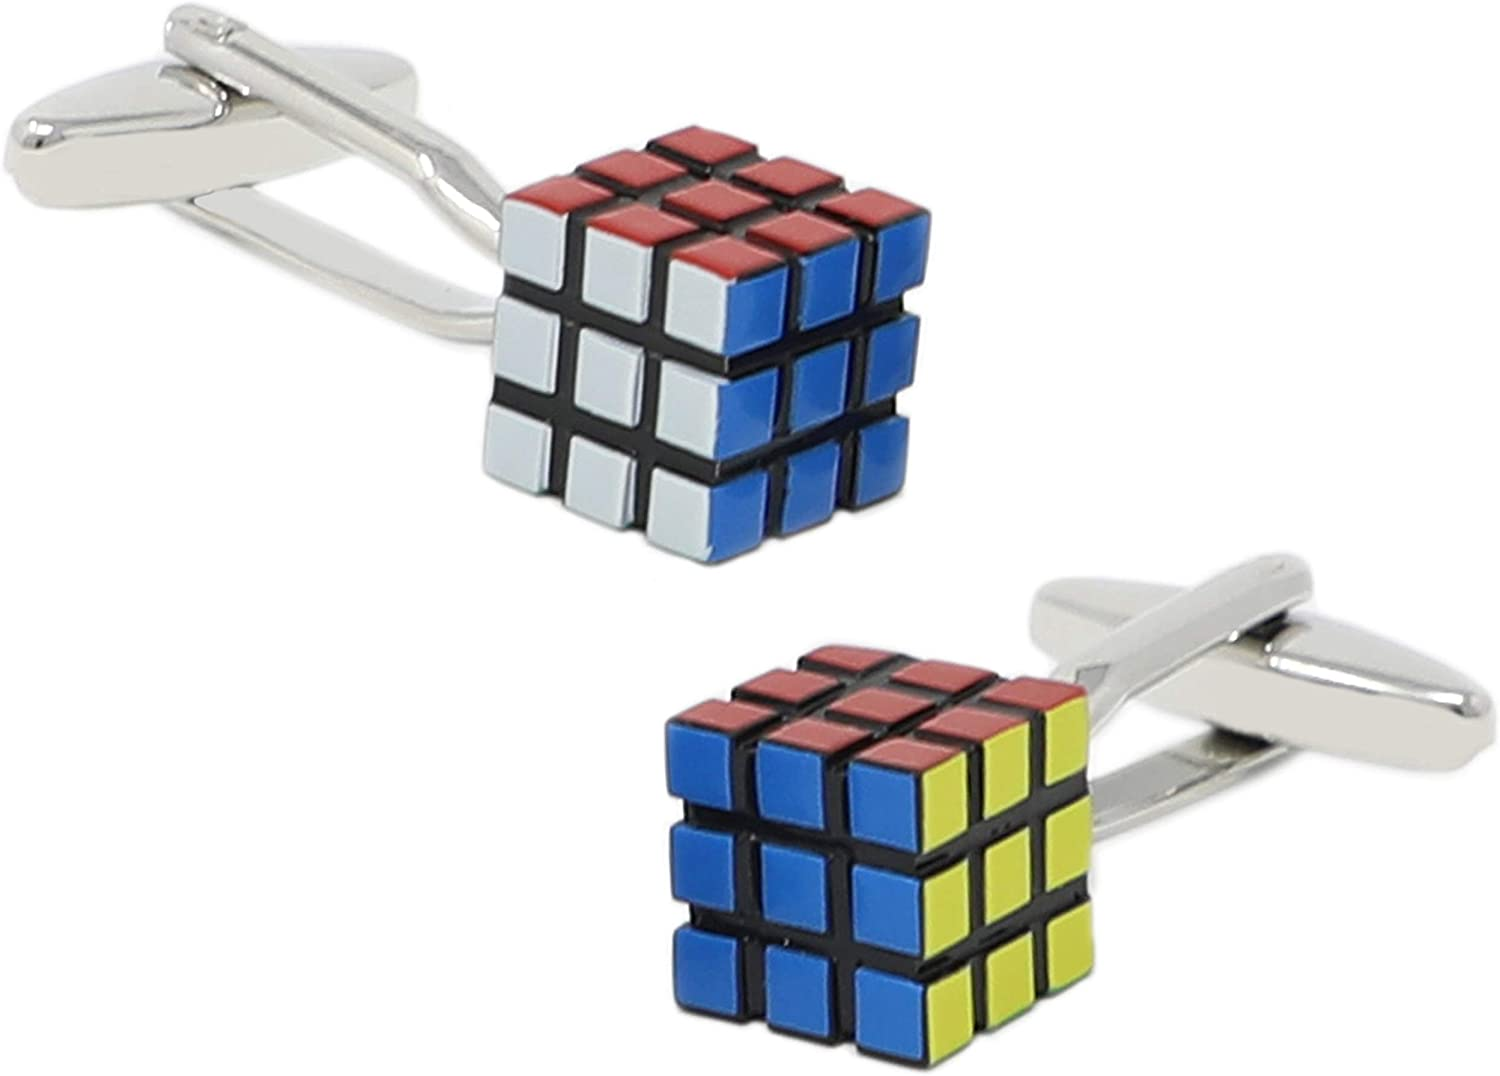 MENDEPOT Novelty Magic Cube Cuff Links with Gift Box Puzzle Cube Cufflinks